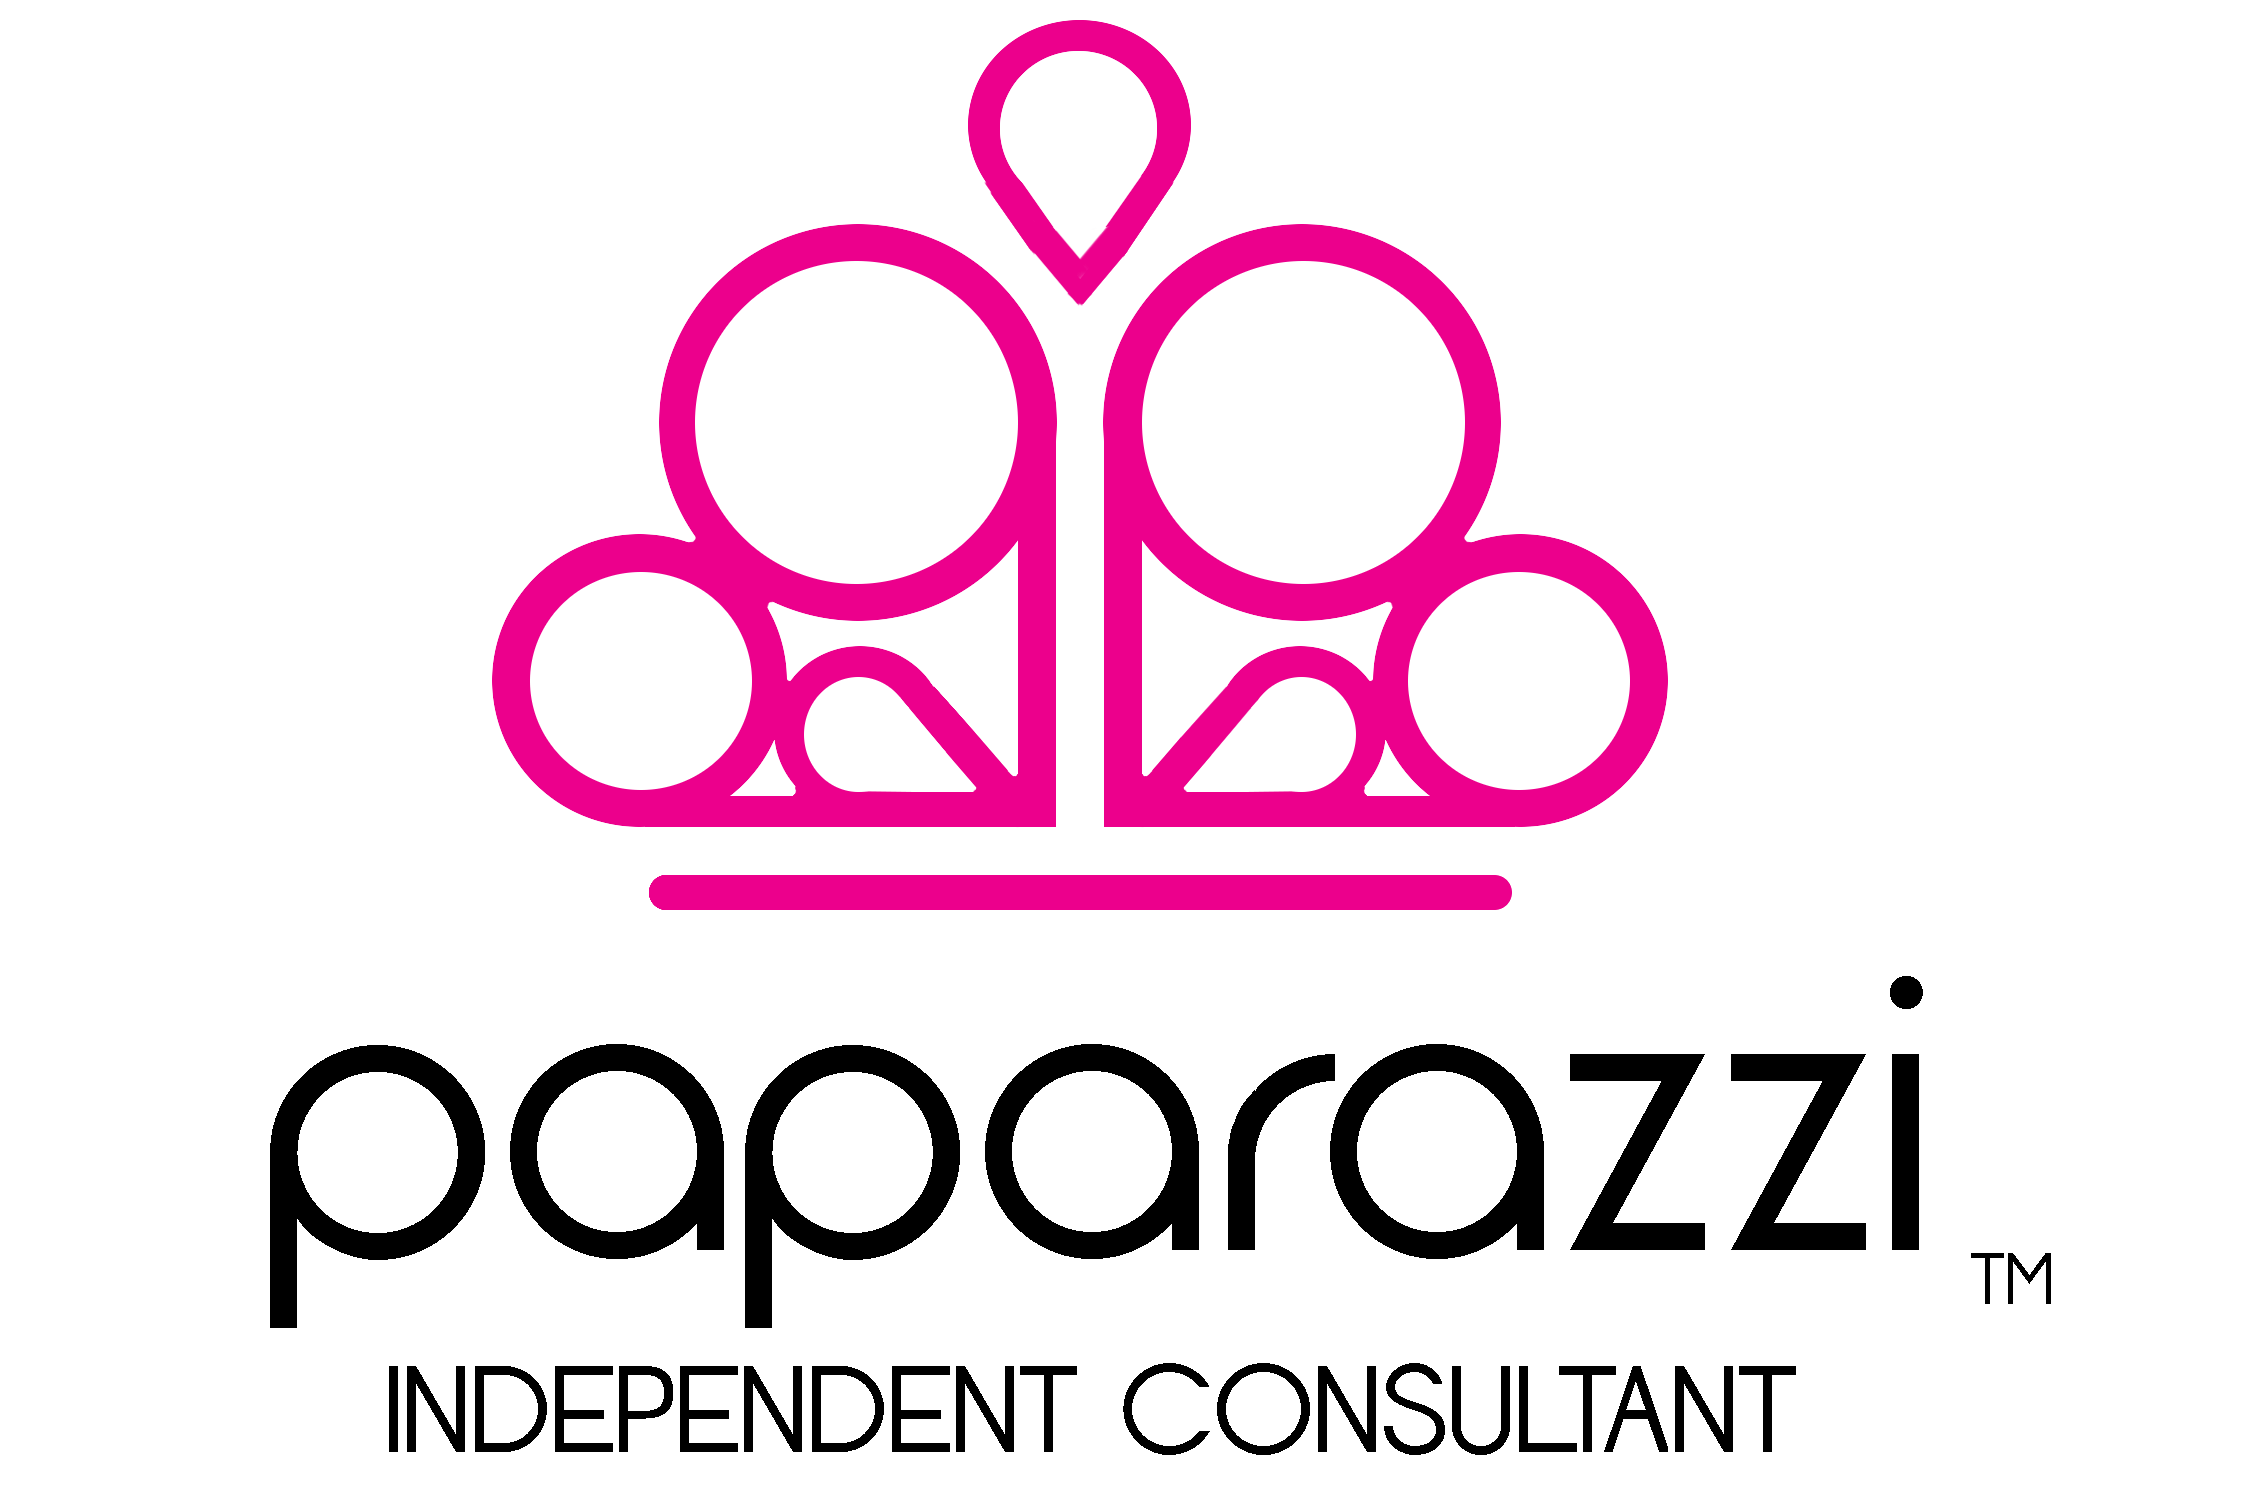 Paparazzi Accessories logo clear background